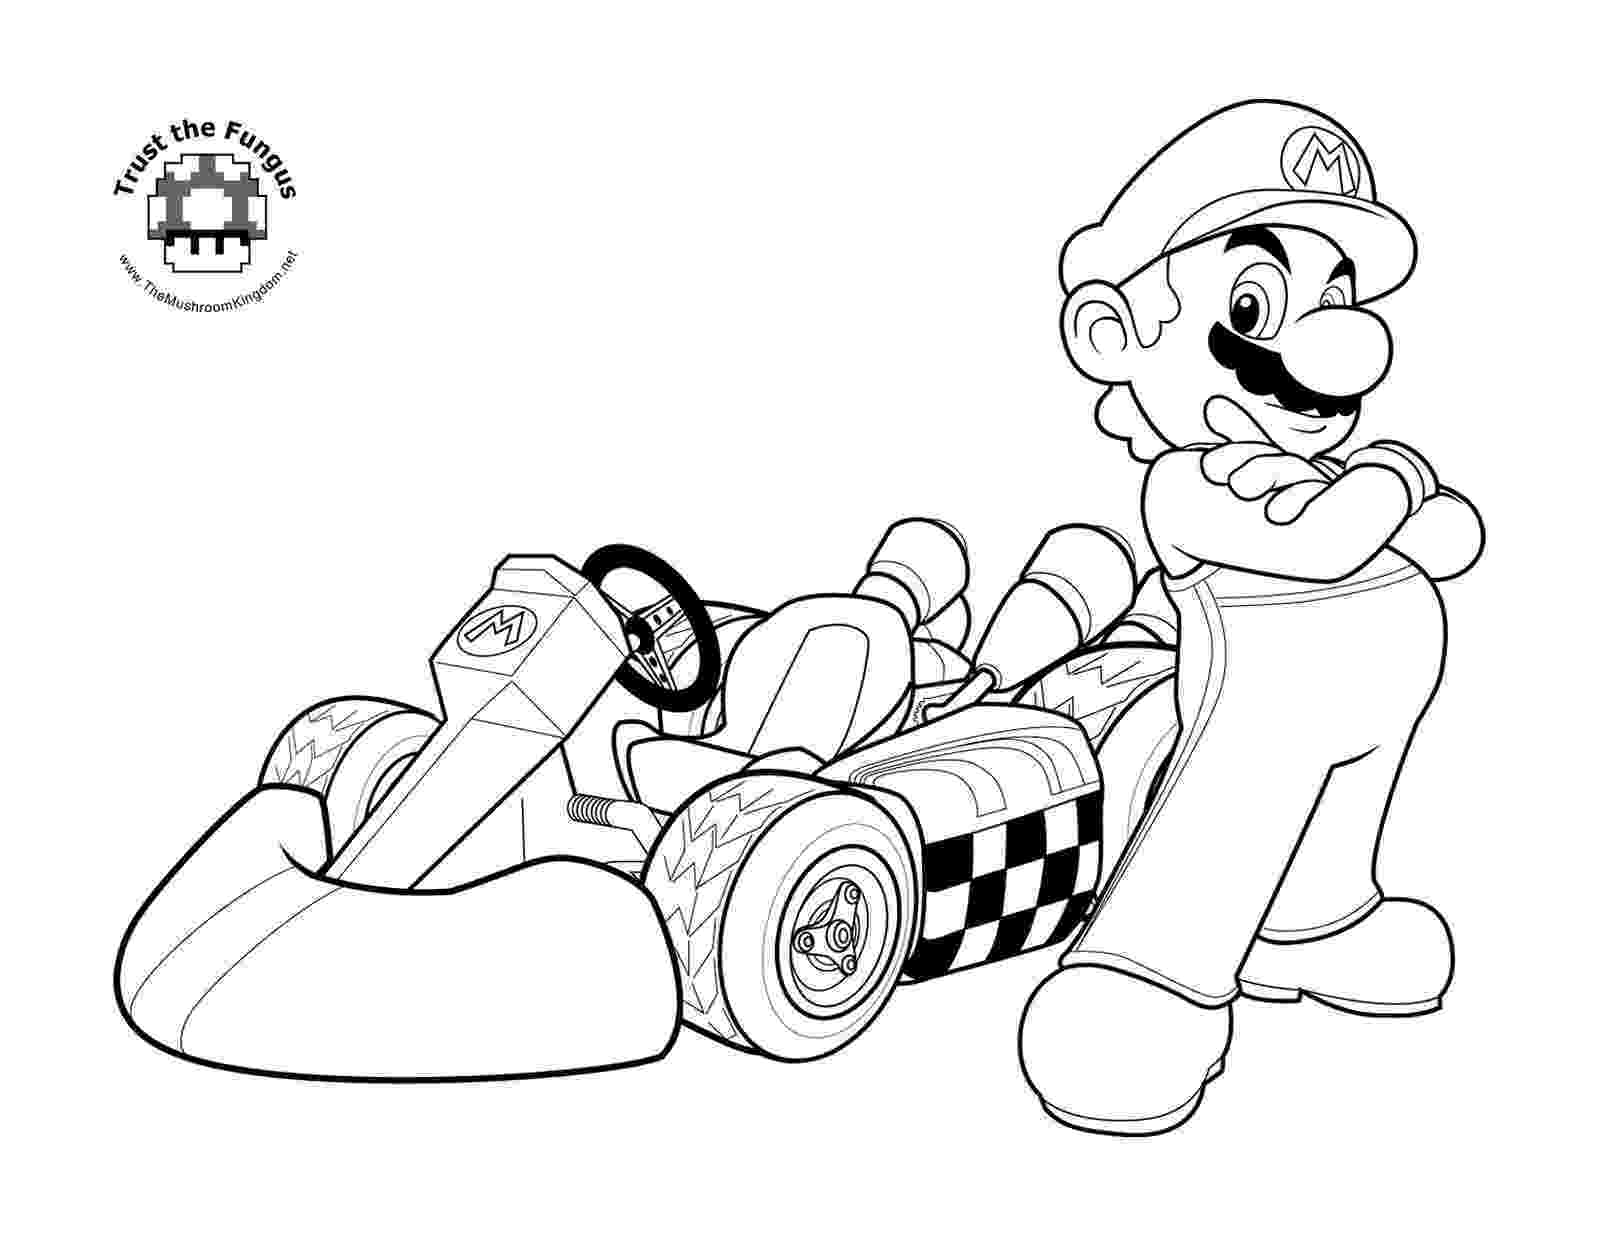 mario pictures to print printable princess peach coloring pages for kids cool2bkids pictures print mario to